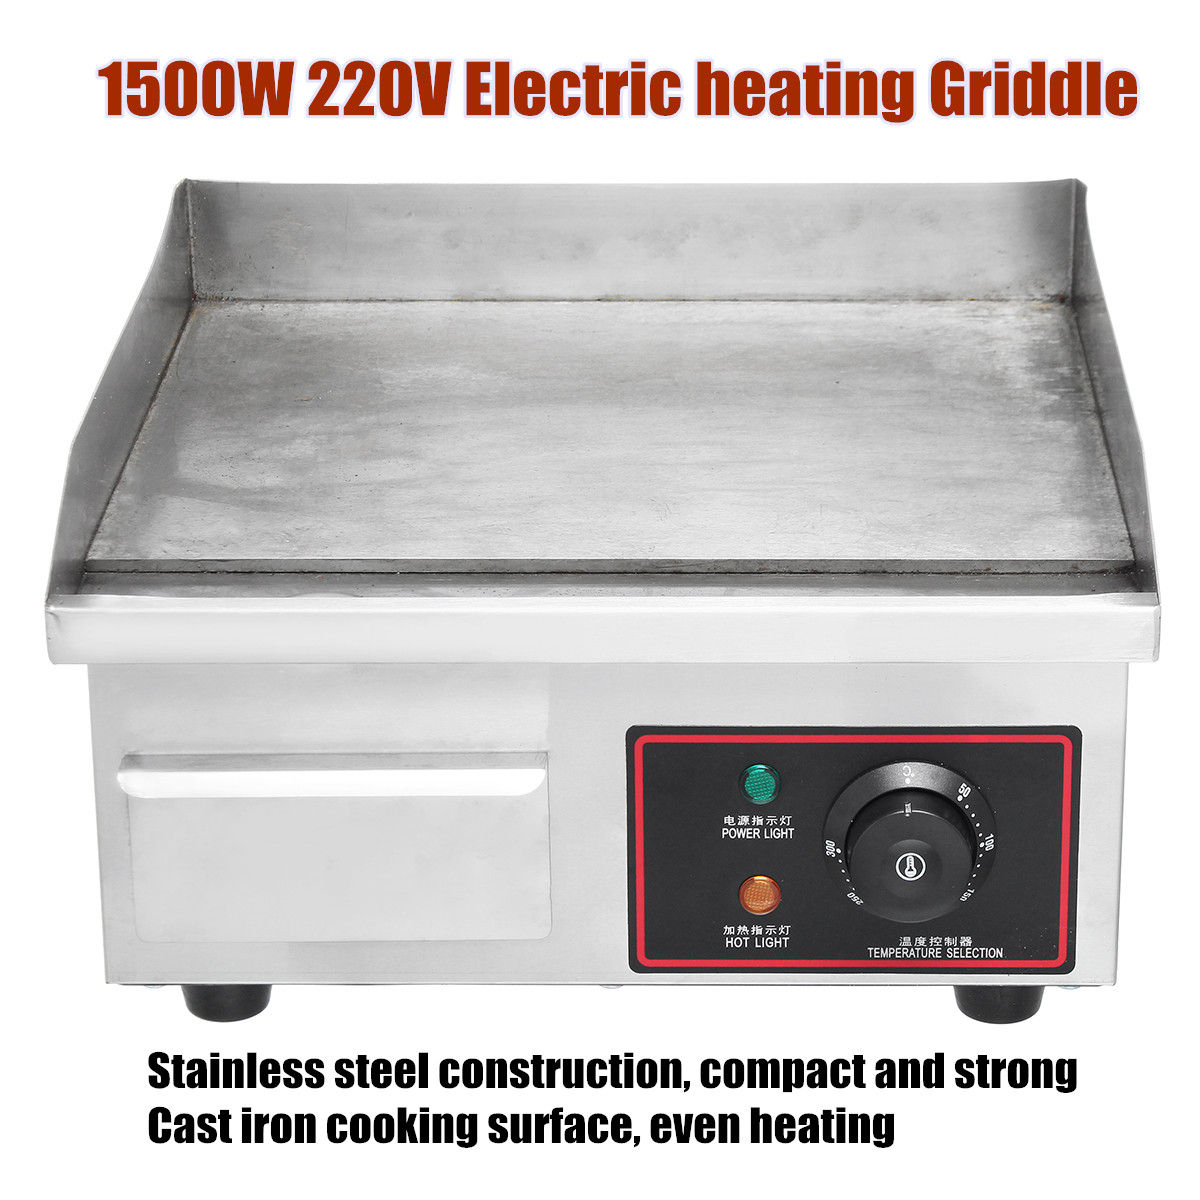 Electric Heating Griddle Stainless Steel 1500W 220V Electric Countertop Griddle Flat Top Commercial Restaurant Grill BBQElectric Heating Griddle Stainless Steel 1500W 220V Electric Countertop Griddle Flat Top Commercial Restaurant Grill BBQ